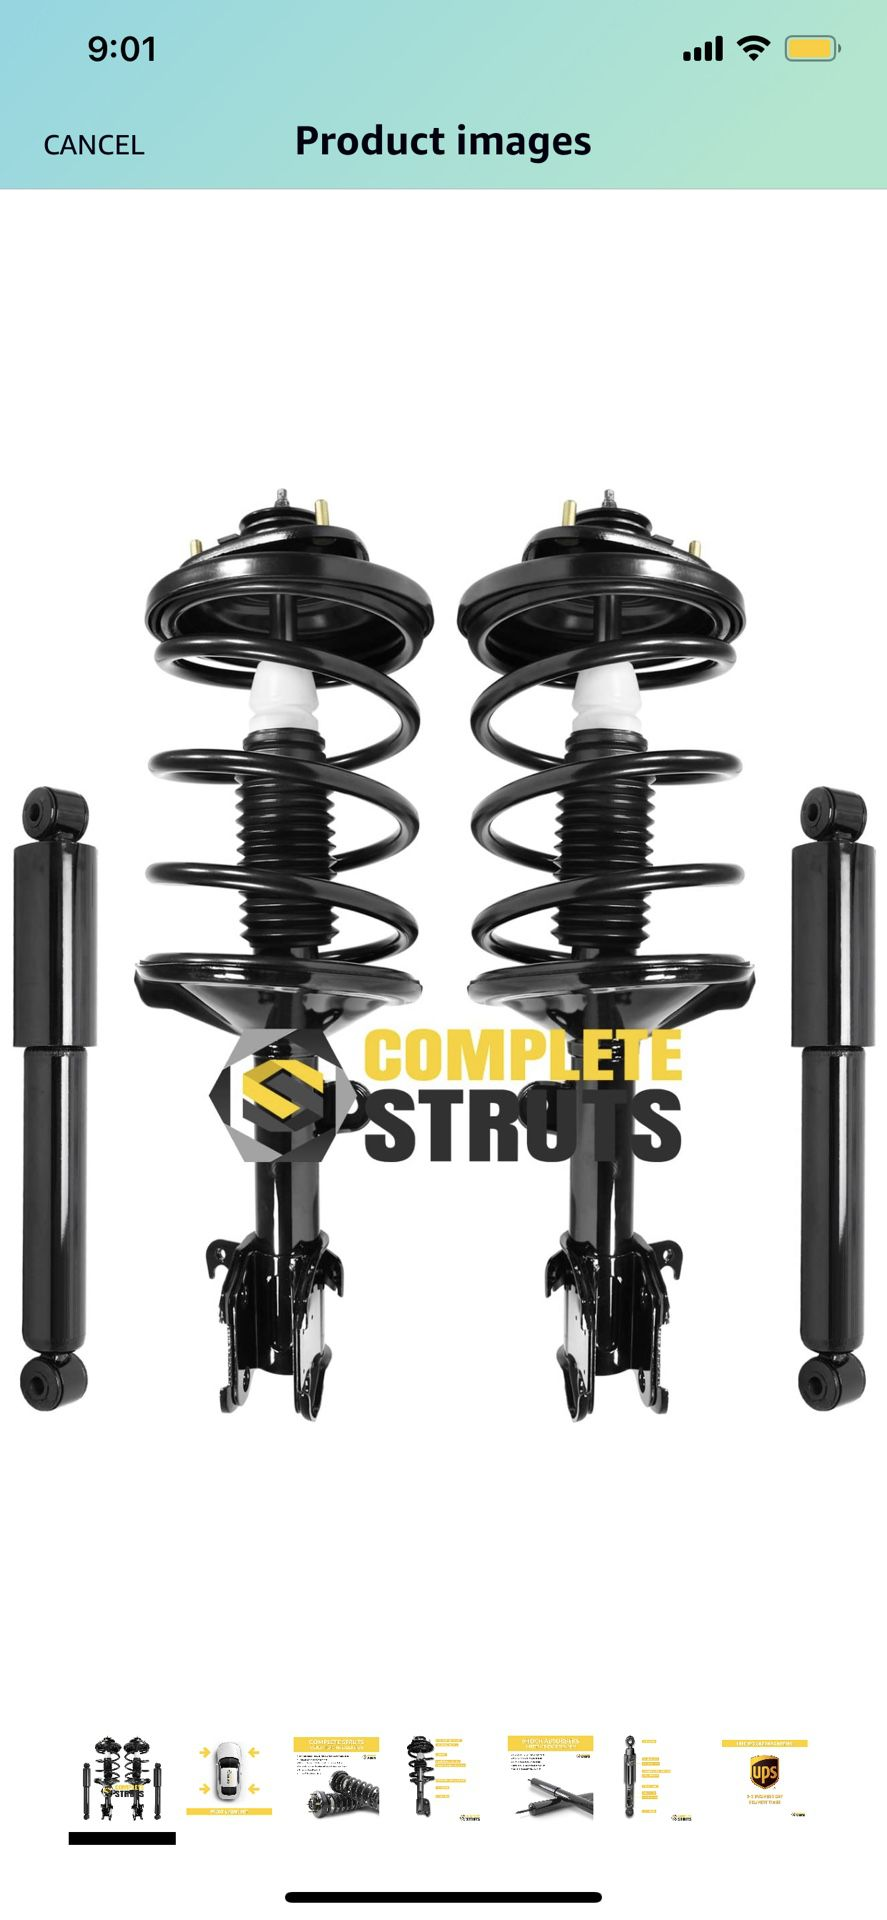 1(contact info removed) Honda Odyssey Struts and Shock Absorber...Brand New in BOX not able to return it w/in the return policy period